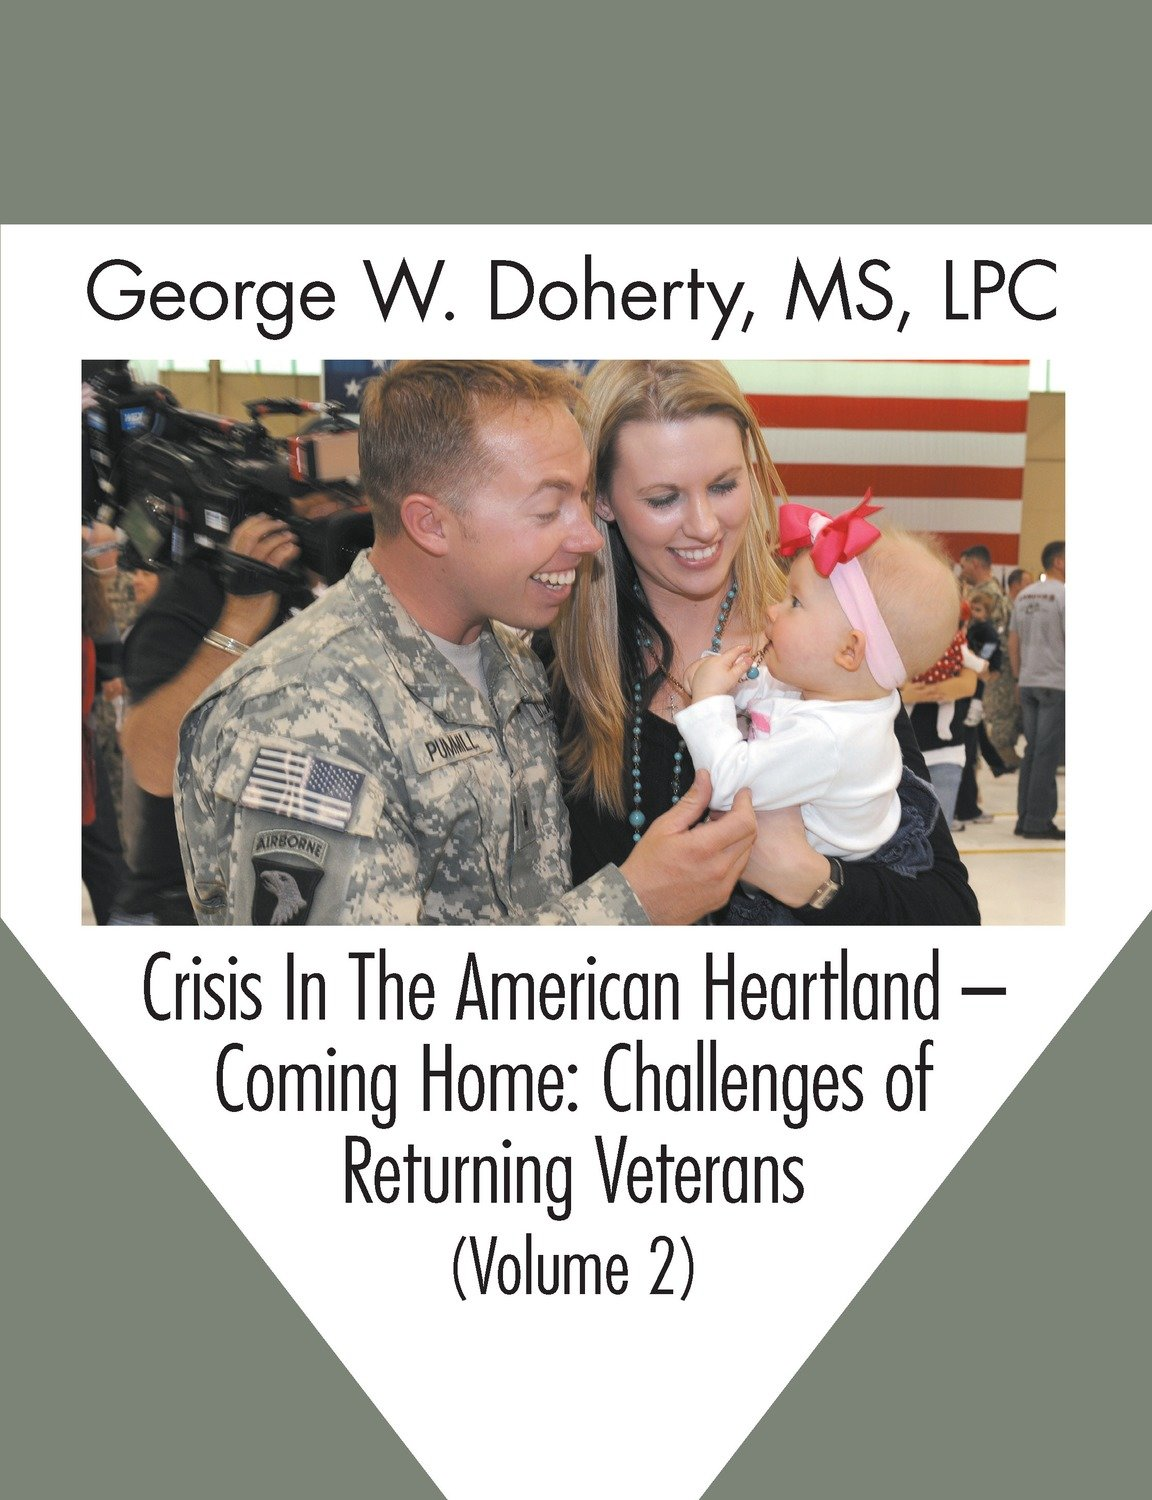 Crisis in the American Heartland -- Coming Home: Challenges of Returning Veterans (Volume 2)